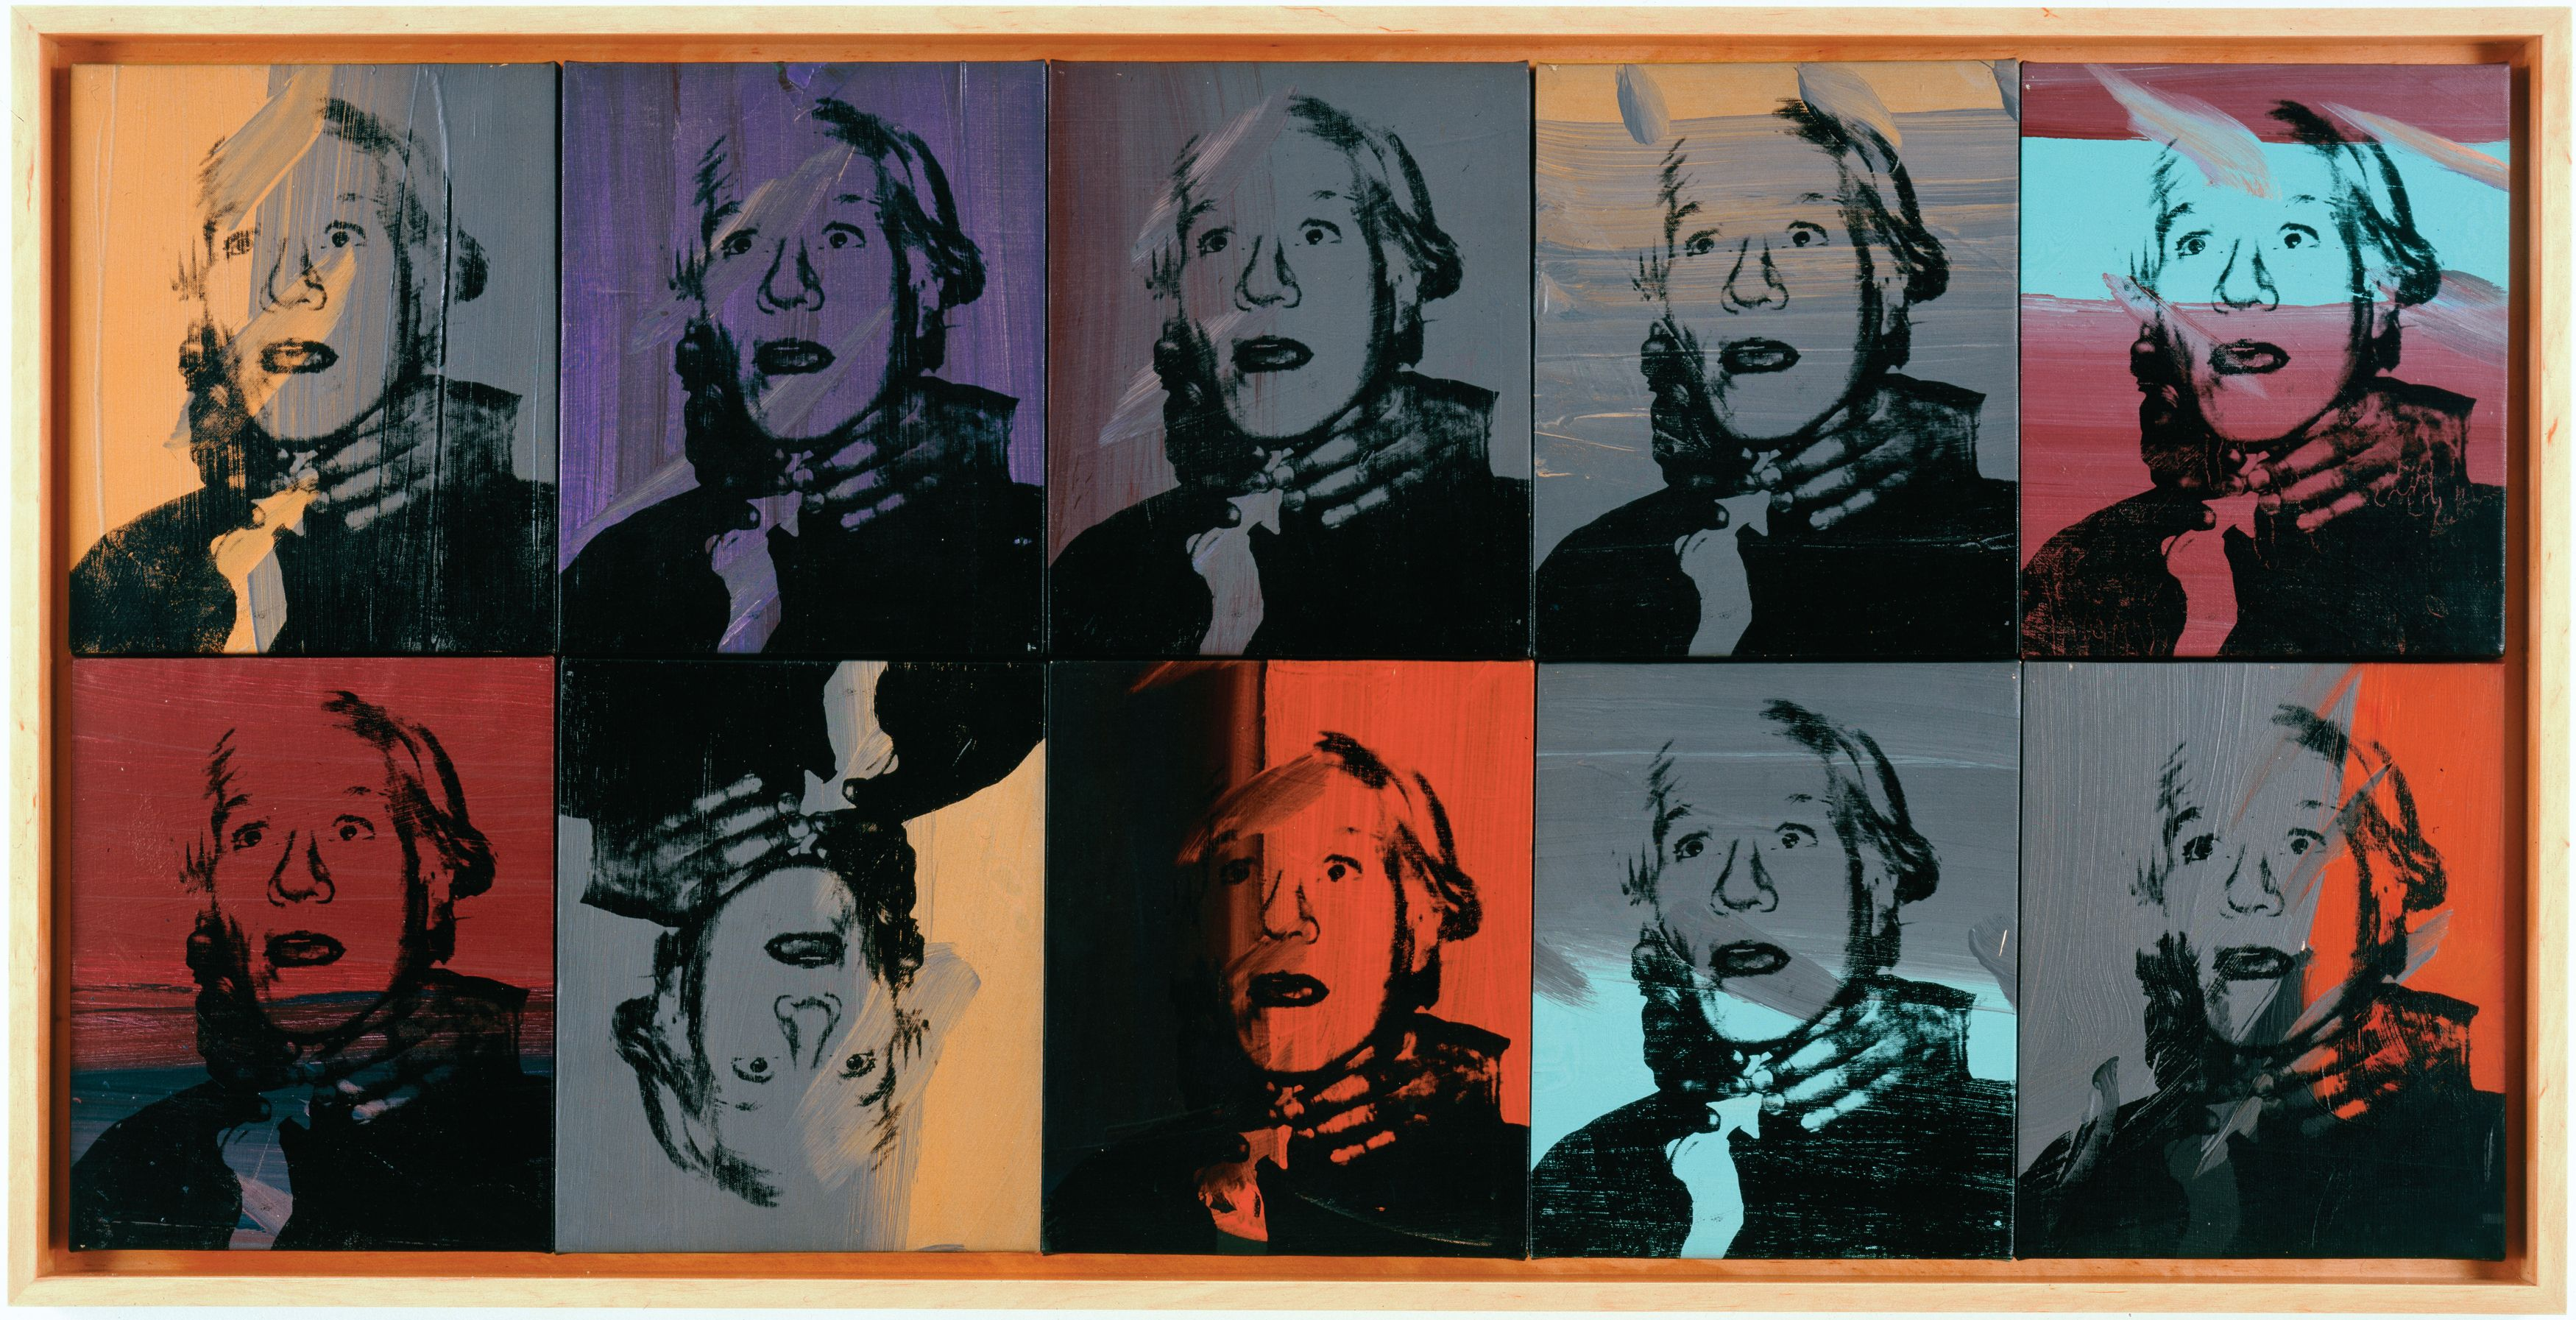 andy warhol the artist Product features andy warhol art print wall painting decor artwork by mark lewis art.